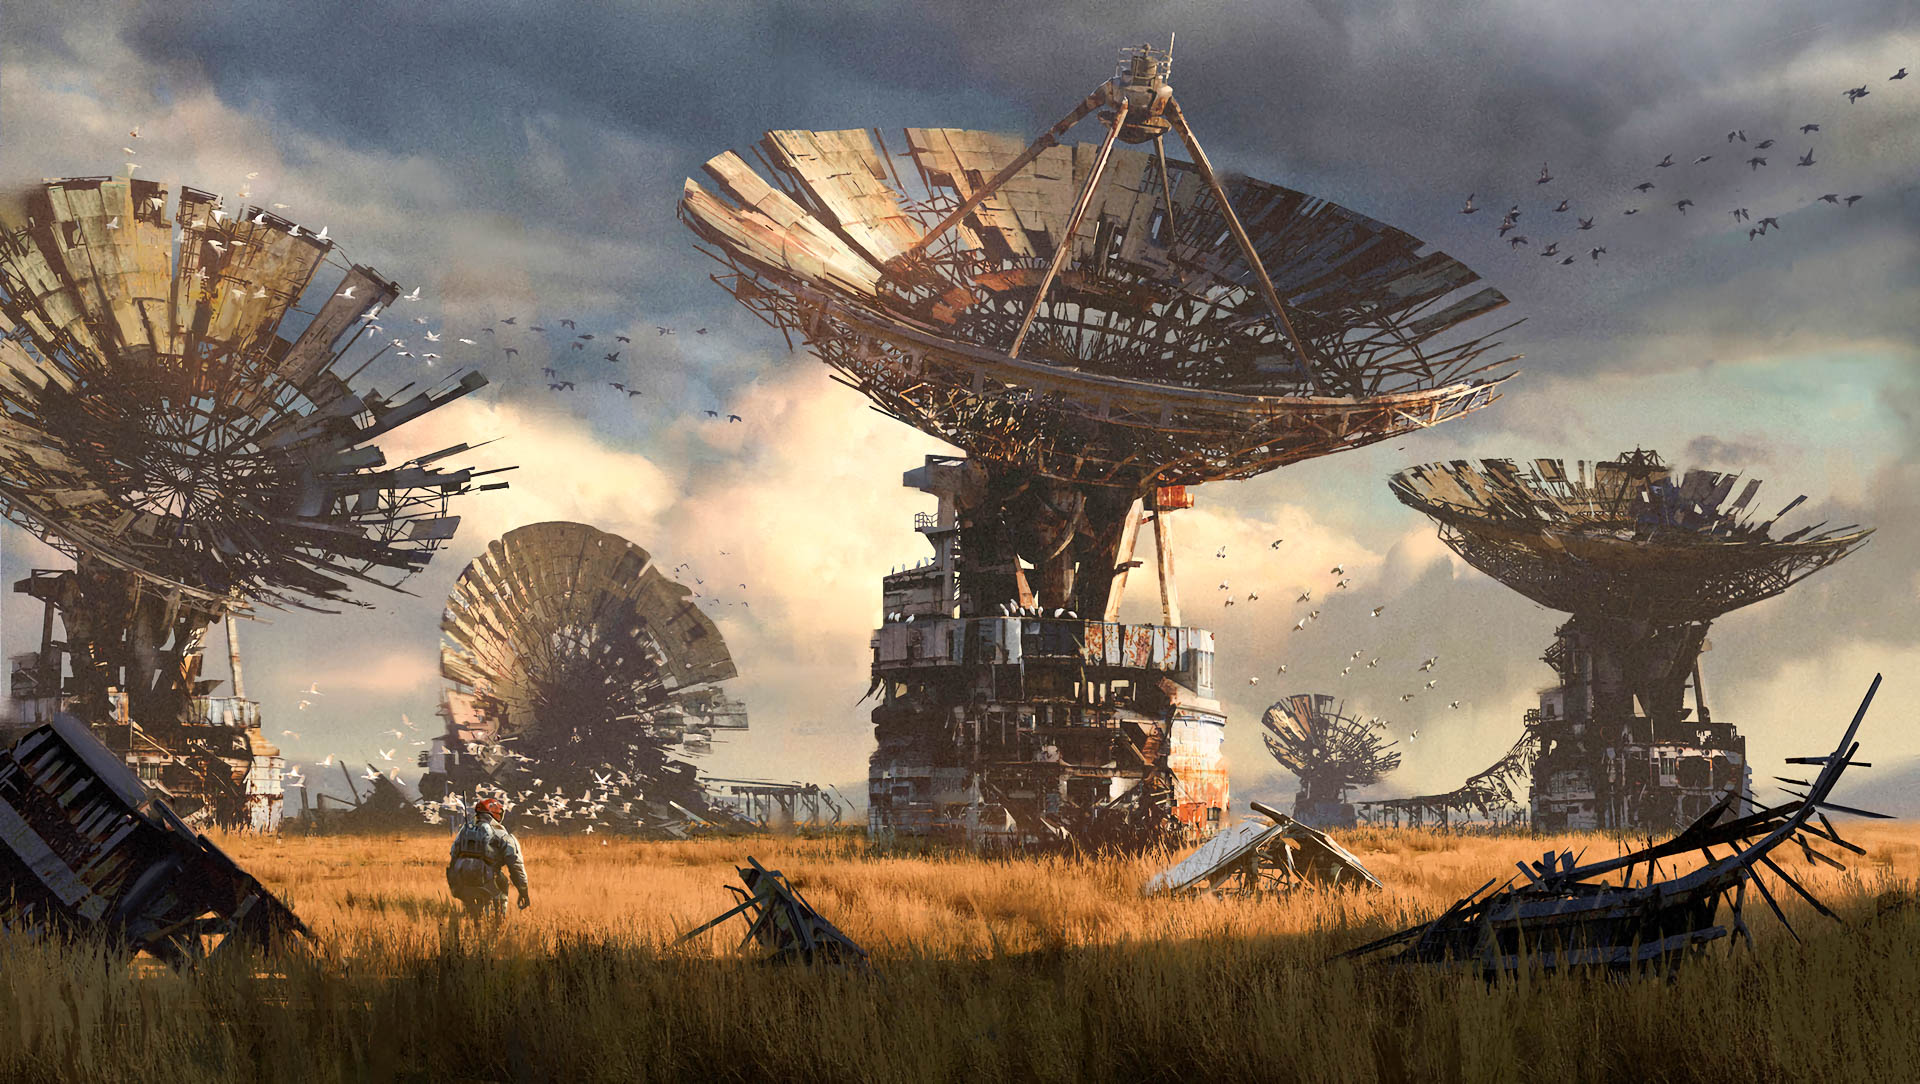 Post apocalyptic amazing pictures images hd wallpapers for Amazing wallpaper for tab